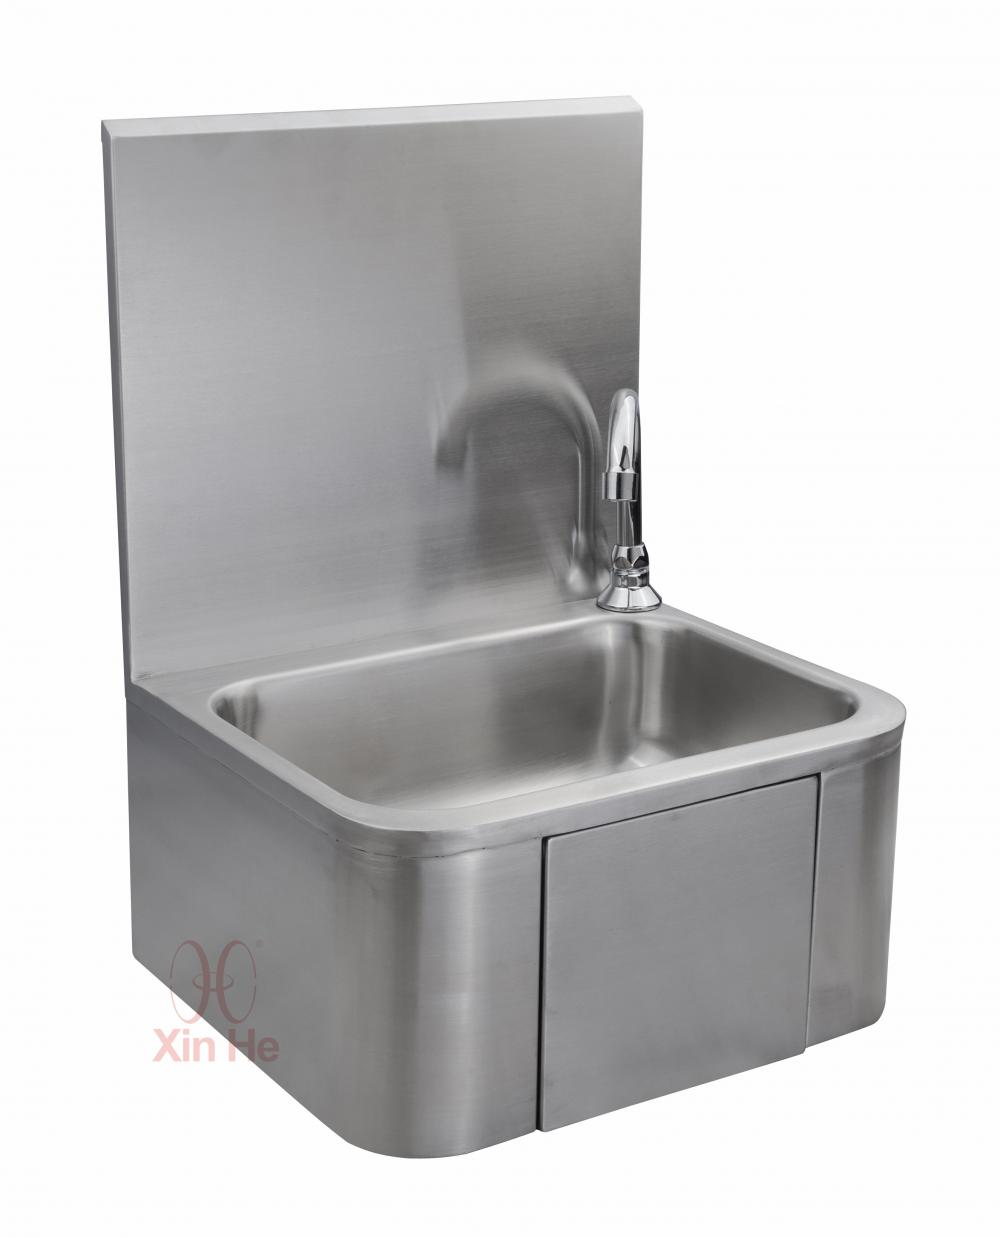 Knee Operated Stainless Steel Sinks